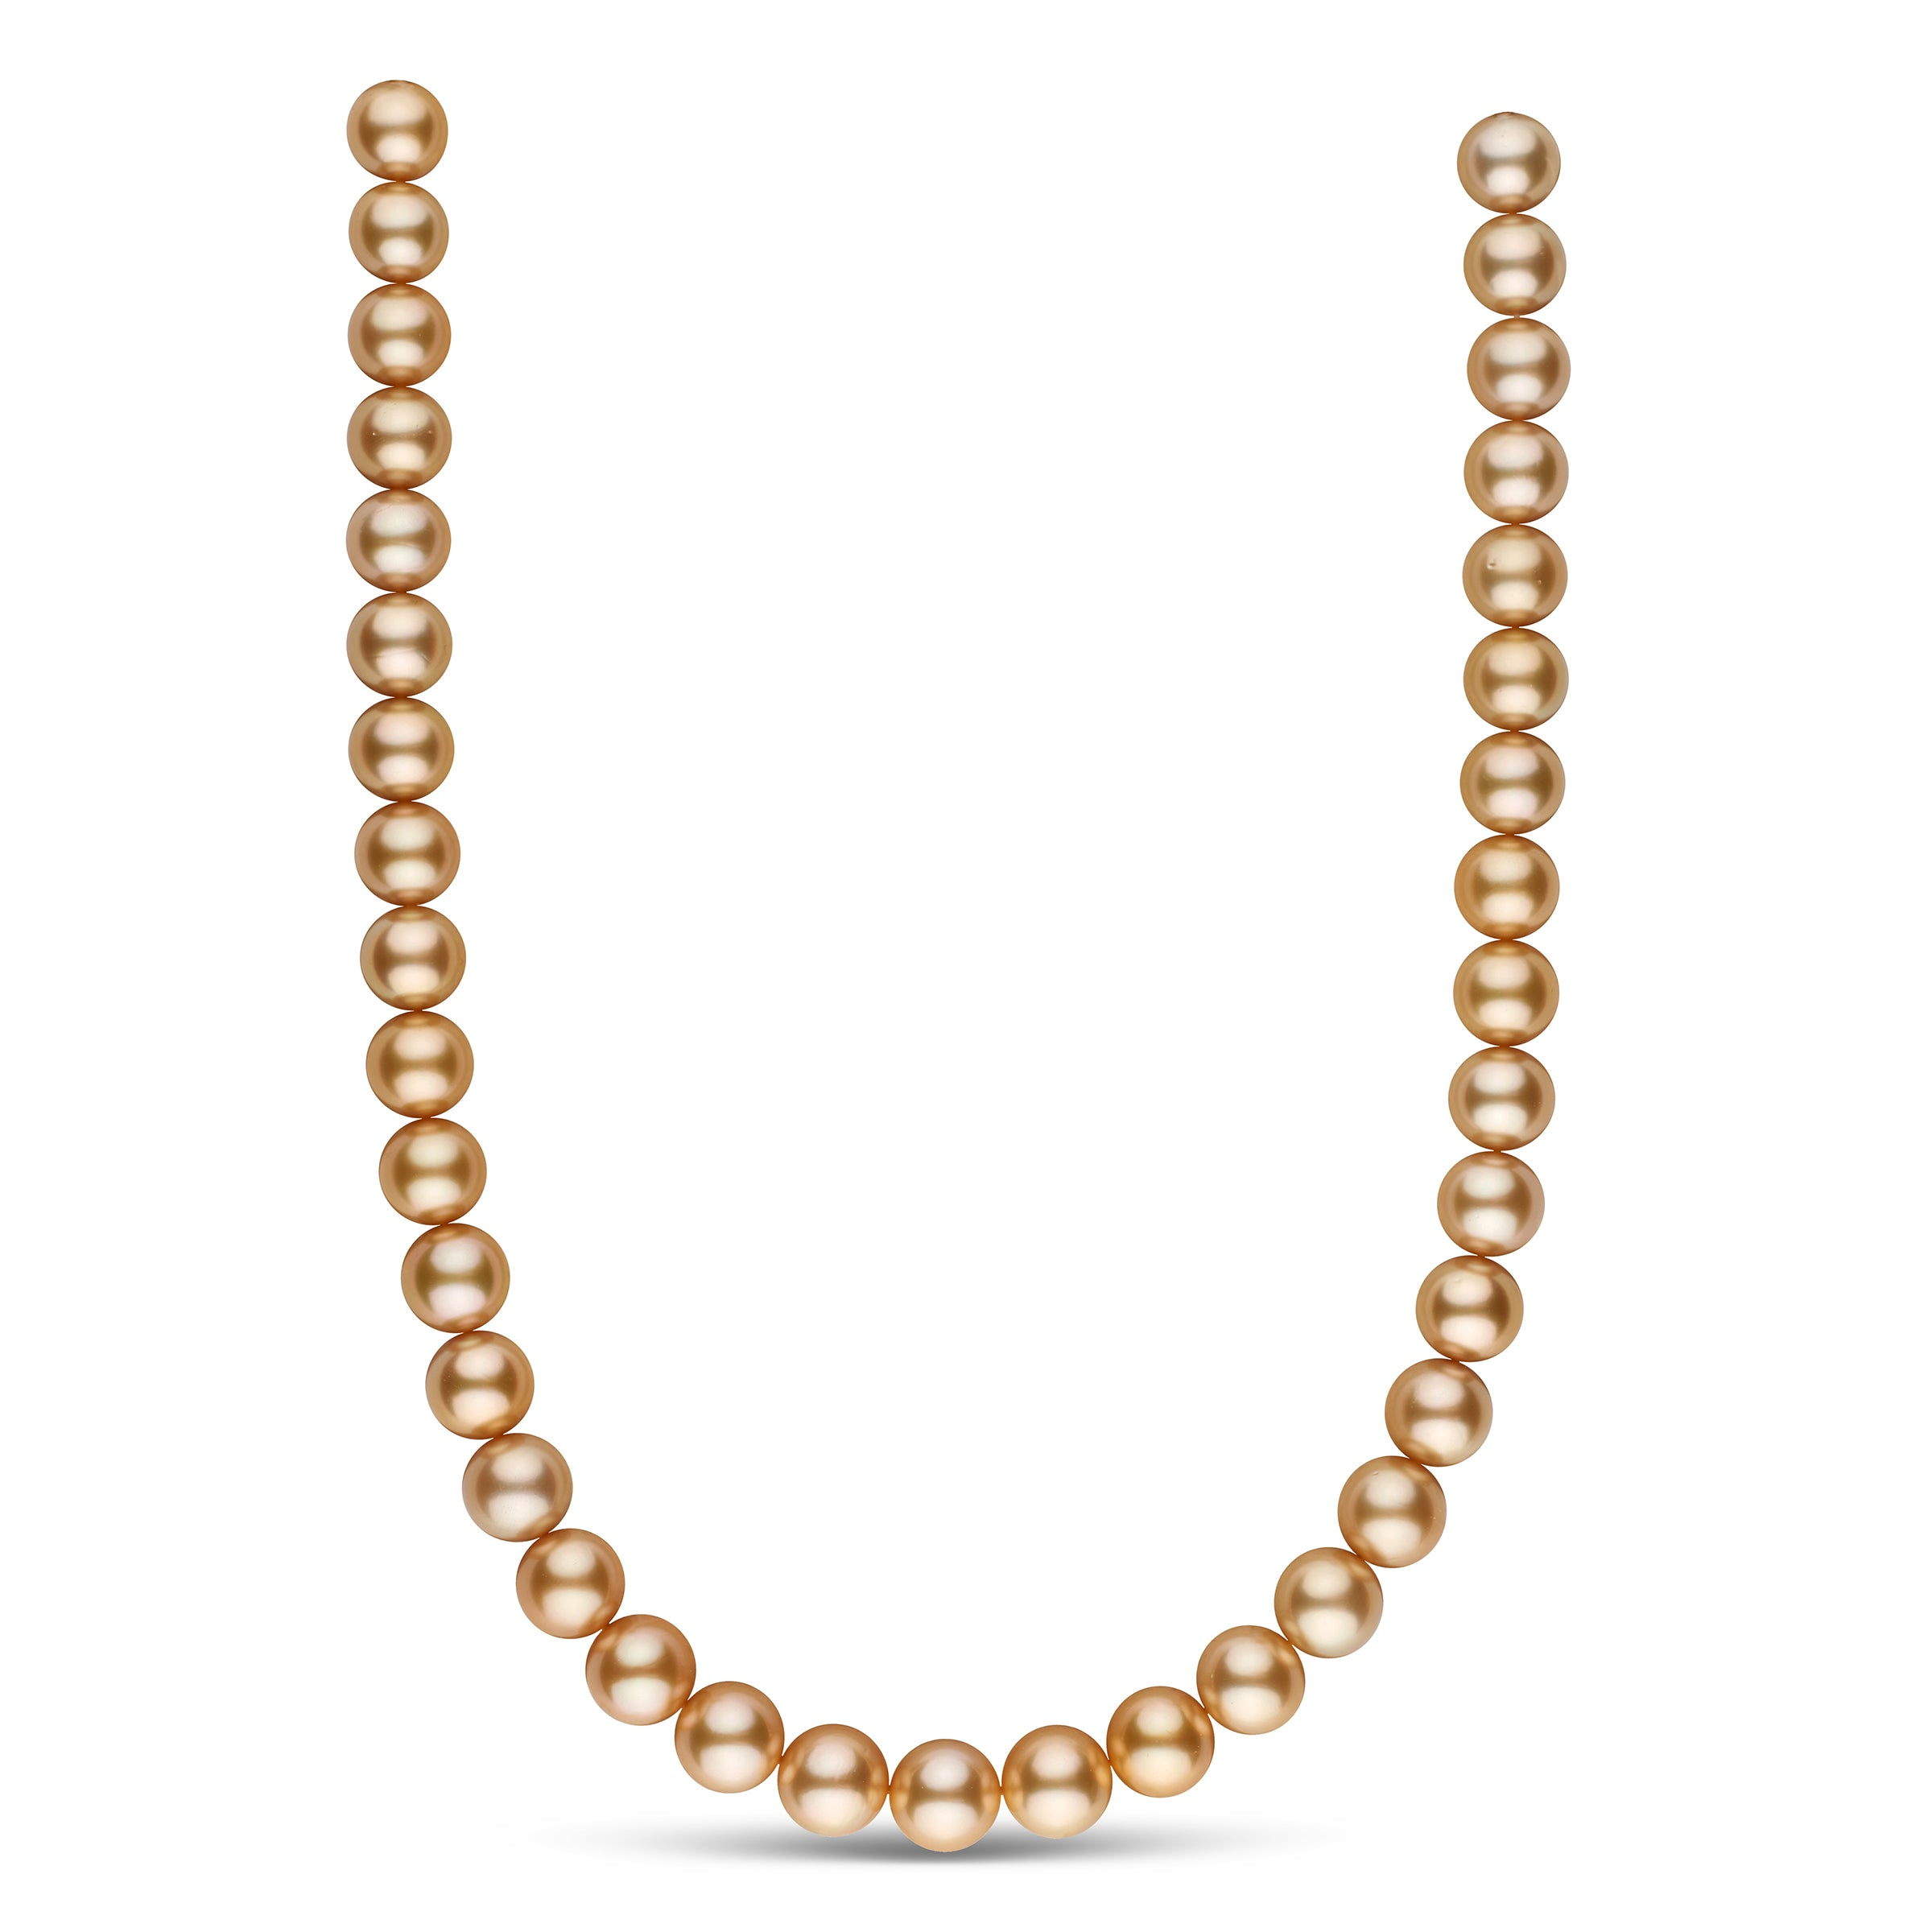 The Some Like It Hot Golden South Sea Pearl Necklace